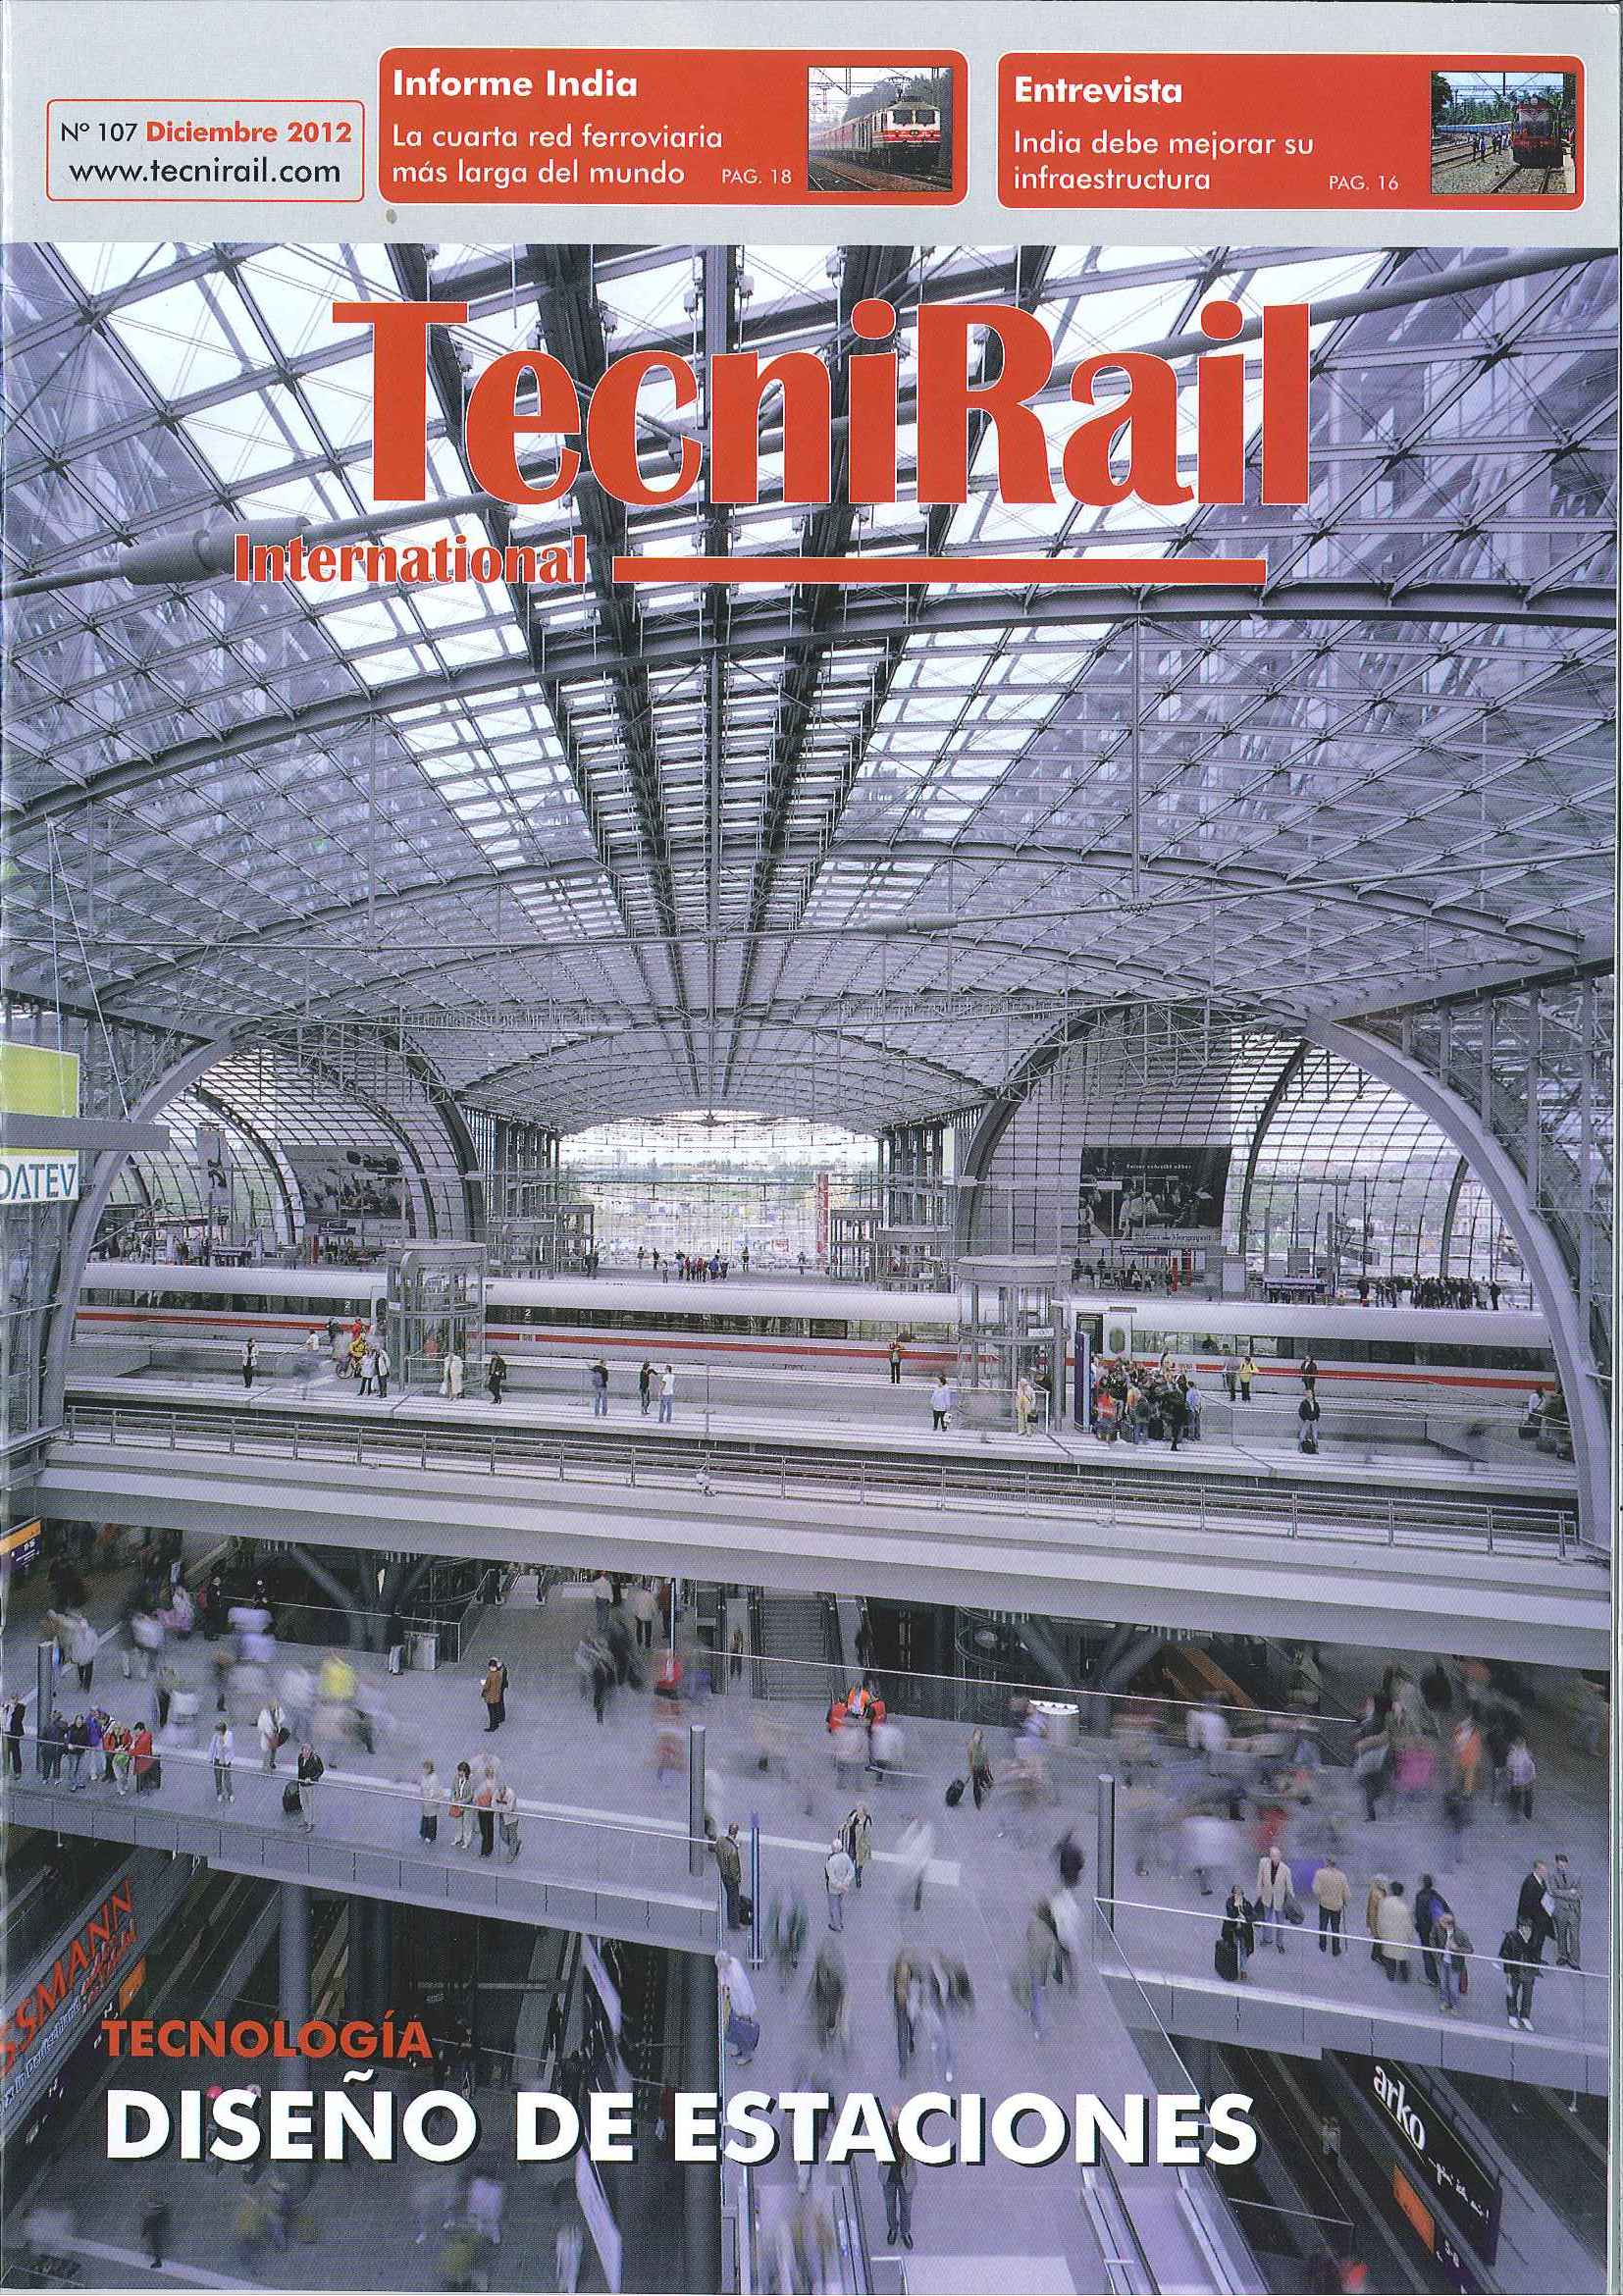 Tecnirail magazine publishes an article featuring two of our buildings